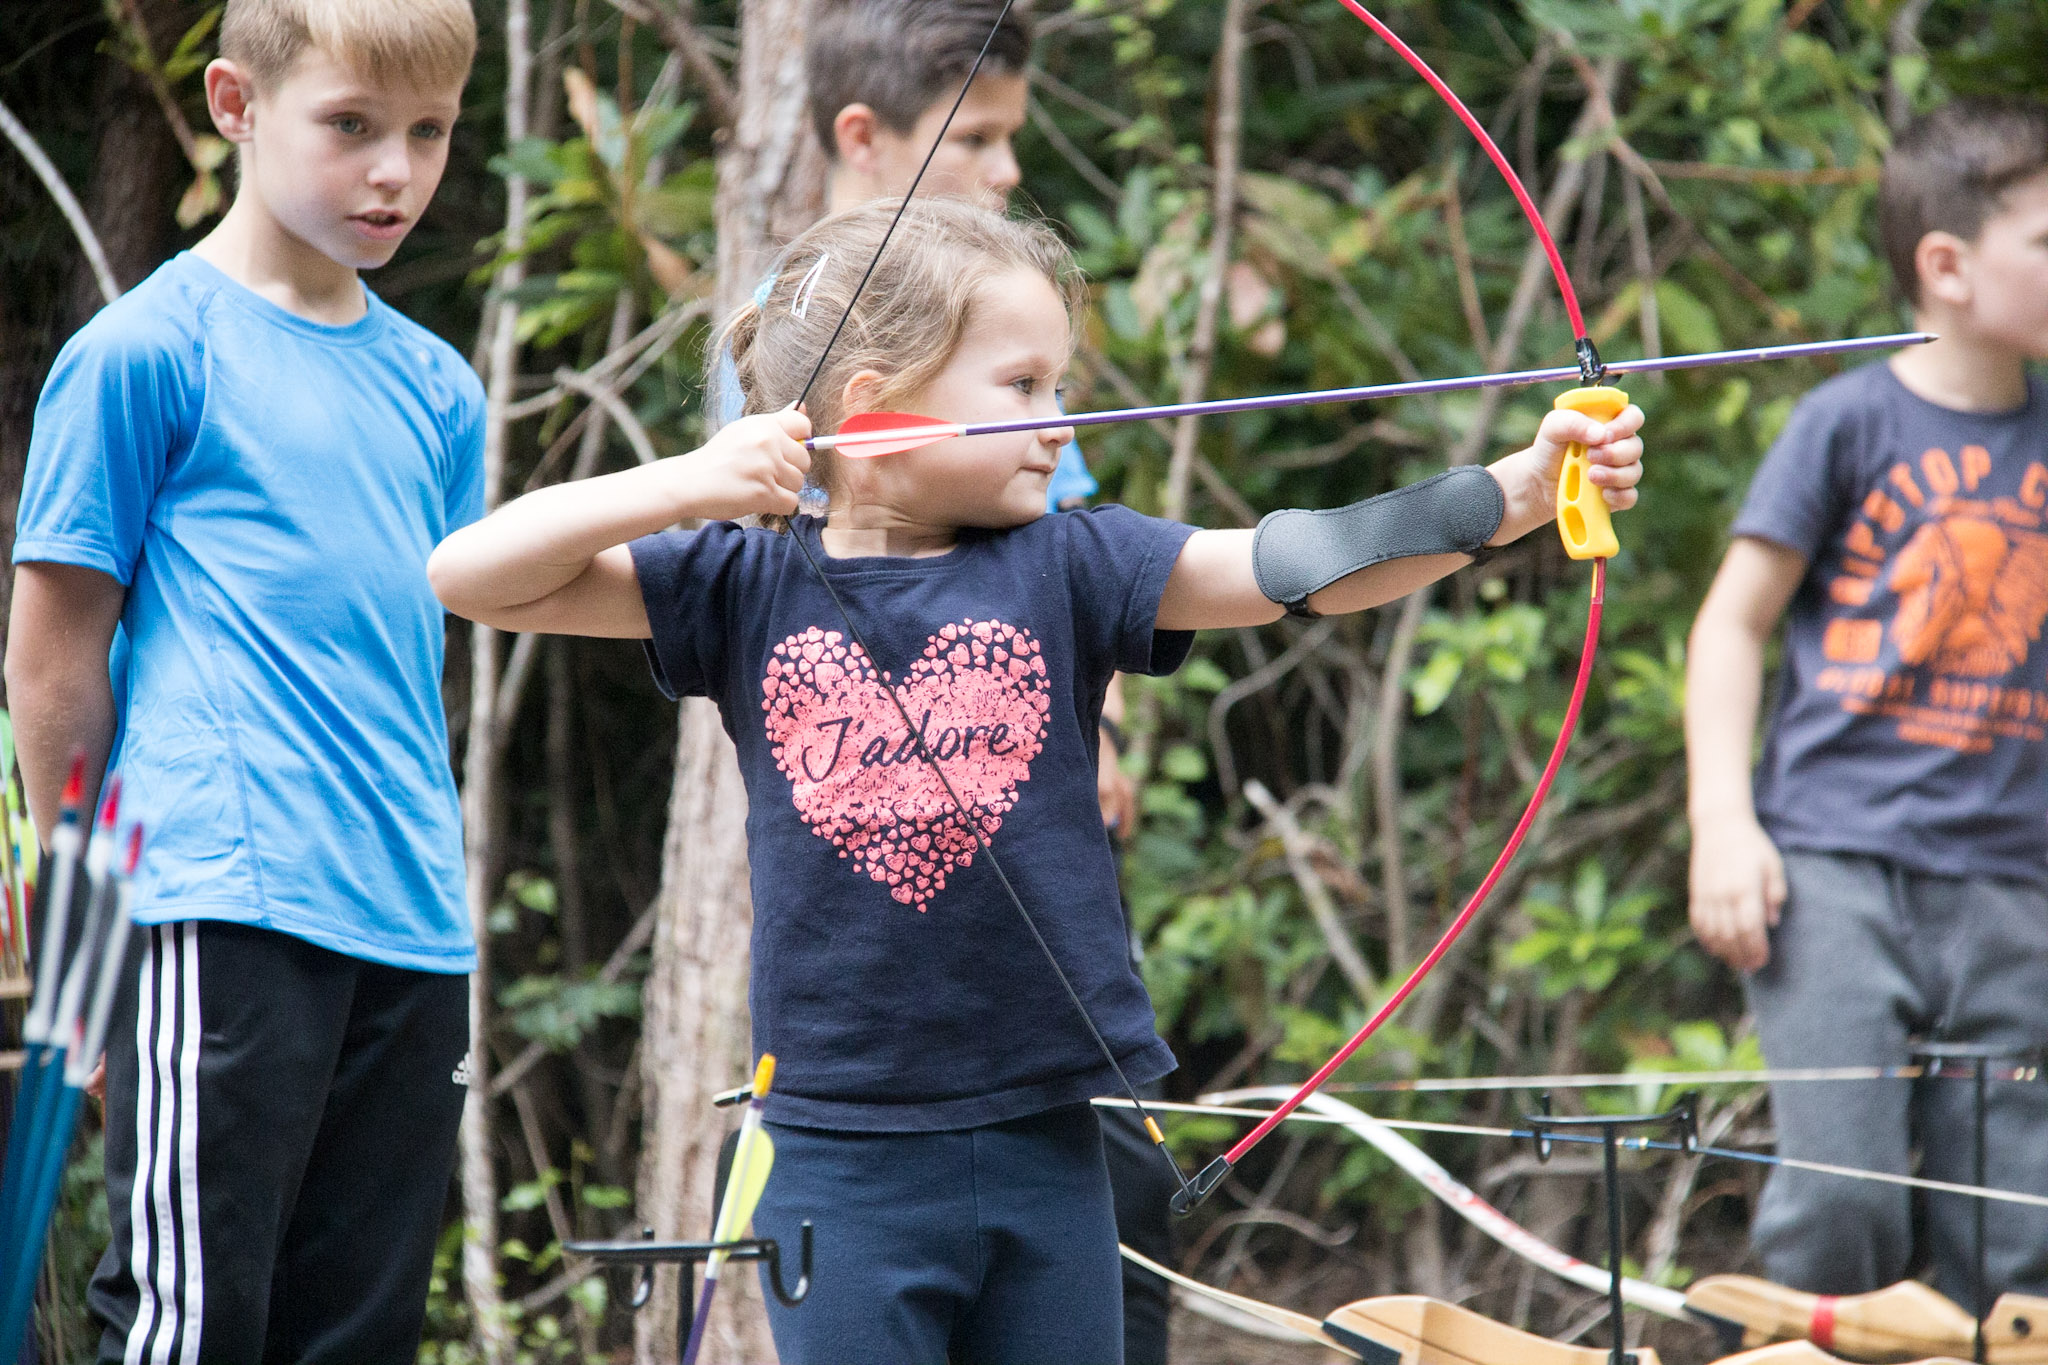 A daughter taking part in a Family Archery session.